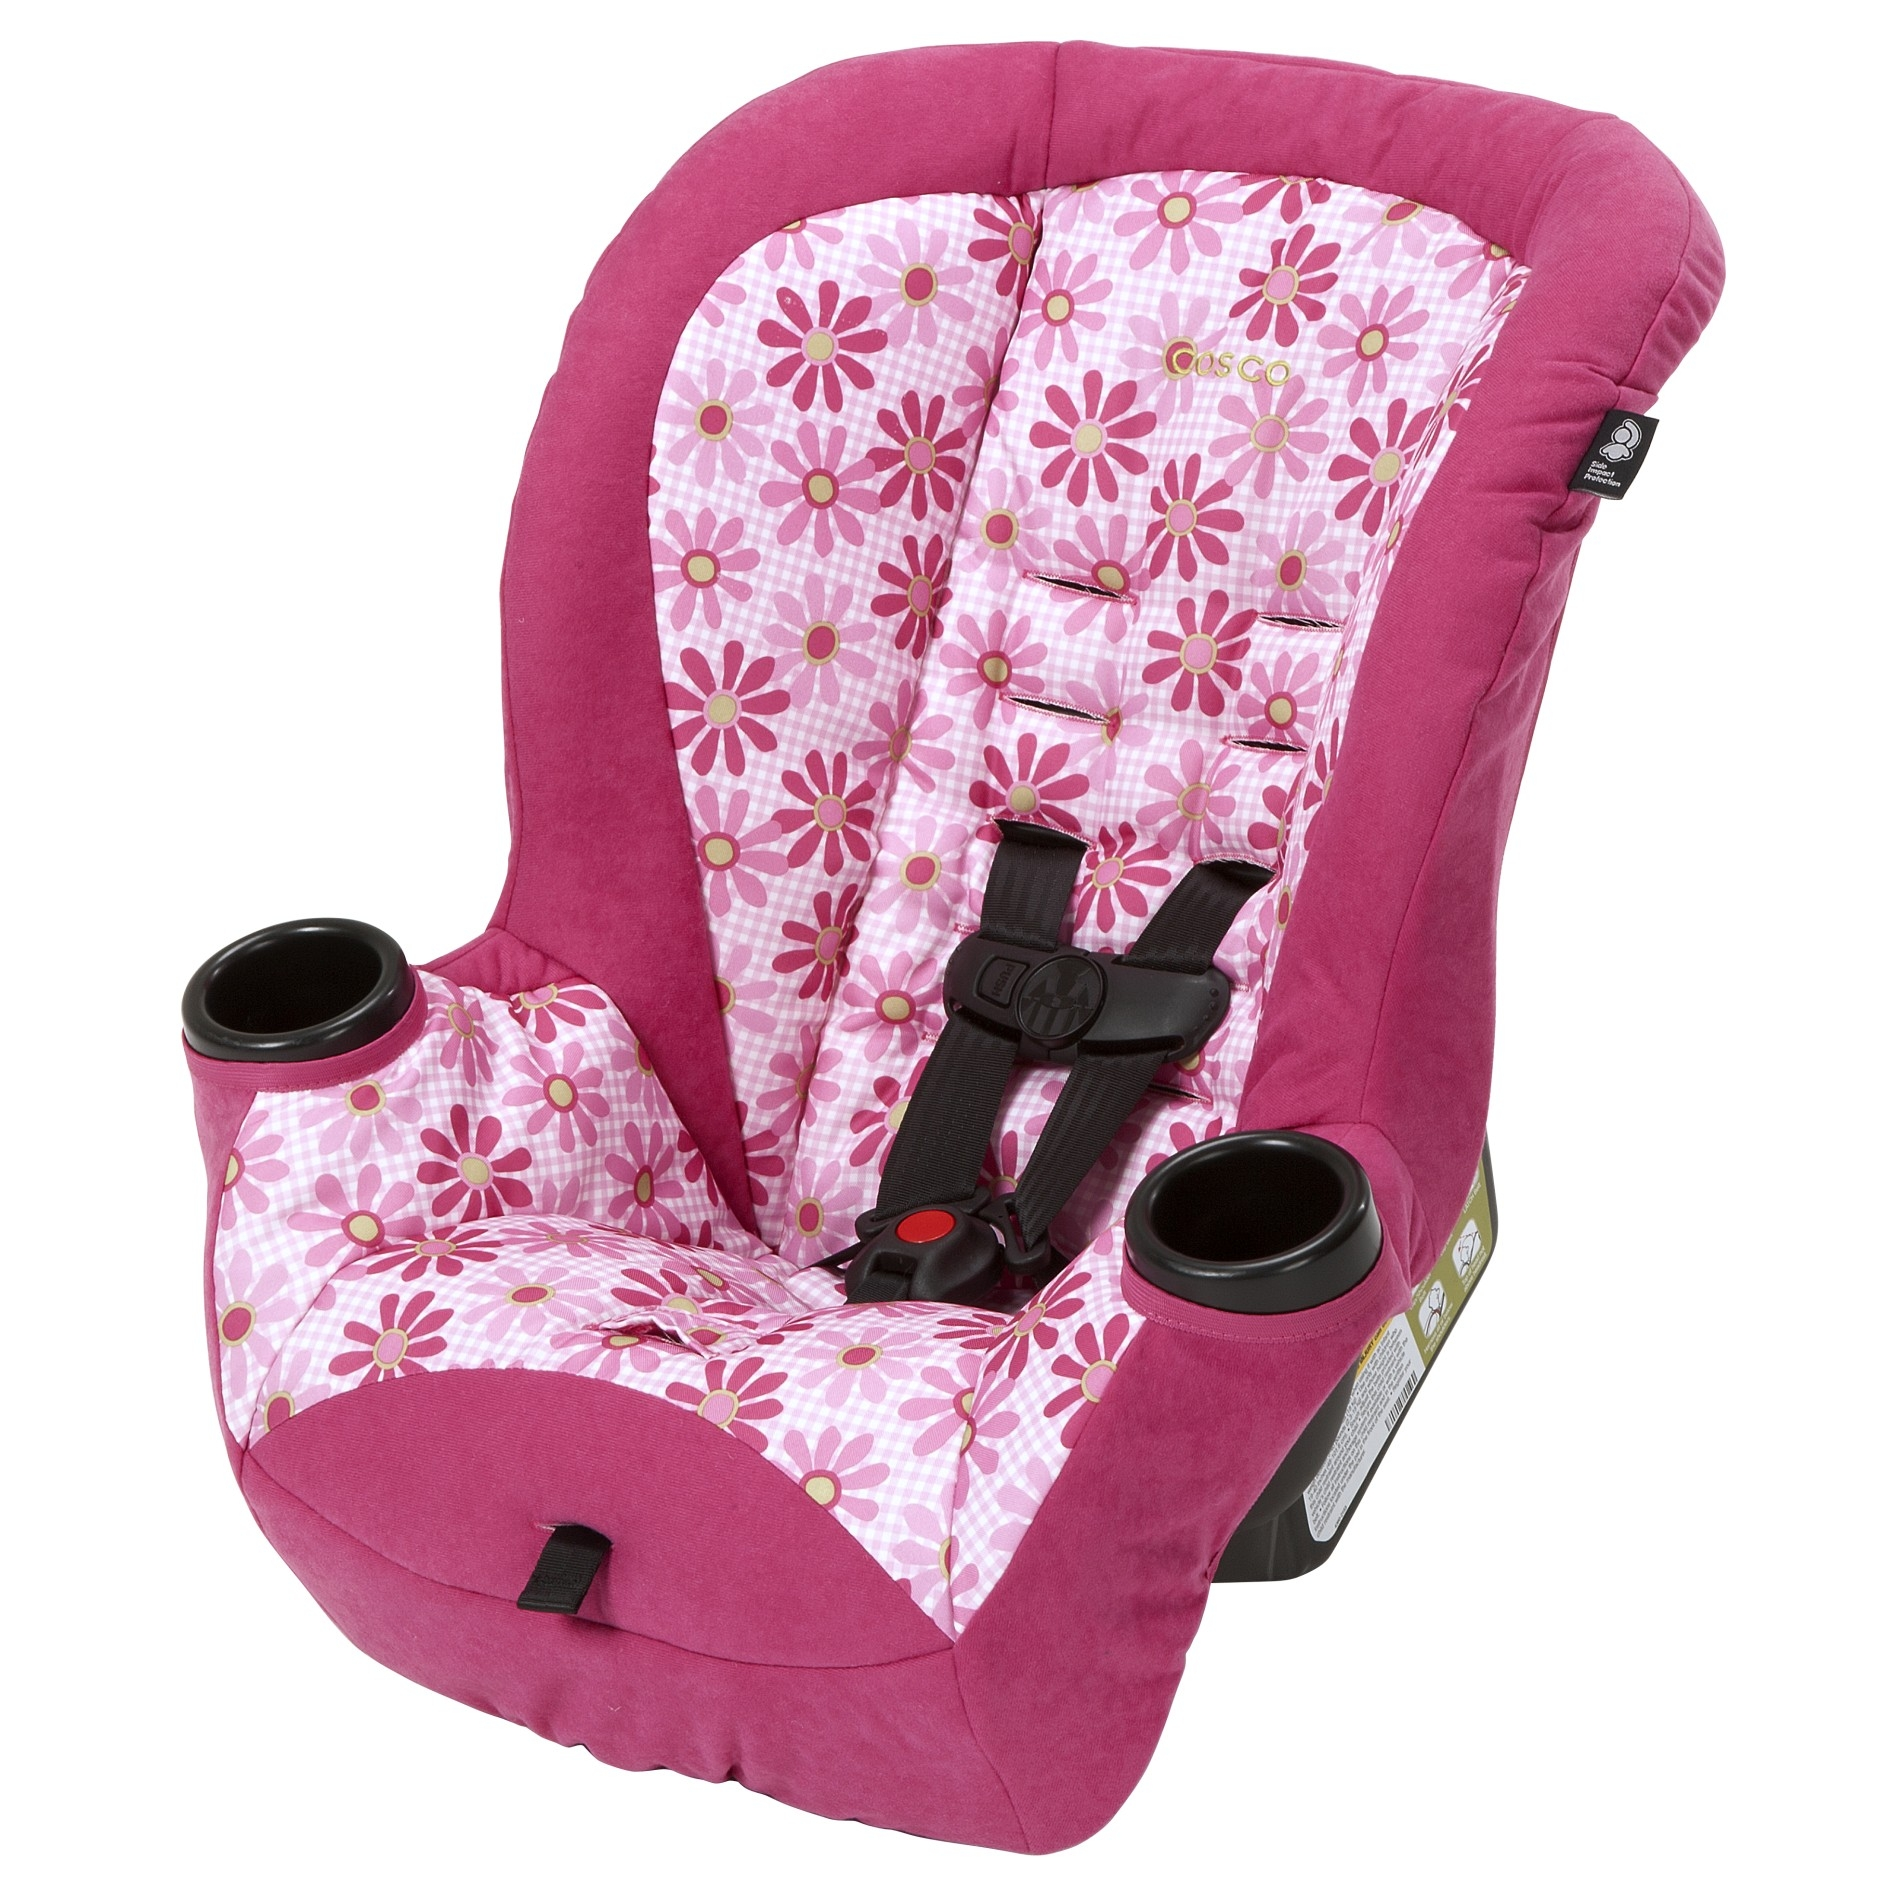 Infant Car Seat Or Convertible Cosco Infant 39;s Convertible Car Seat Daisy Mae